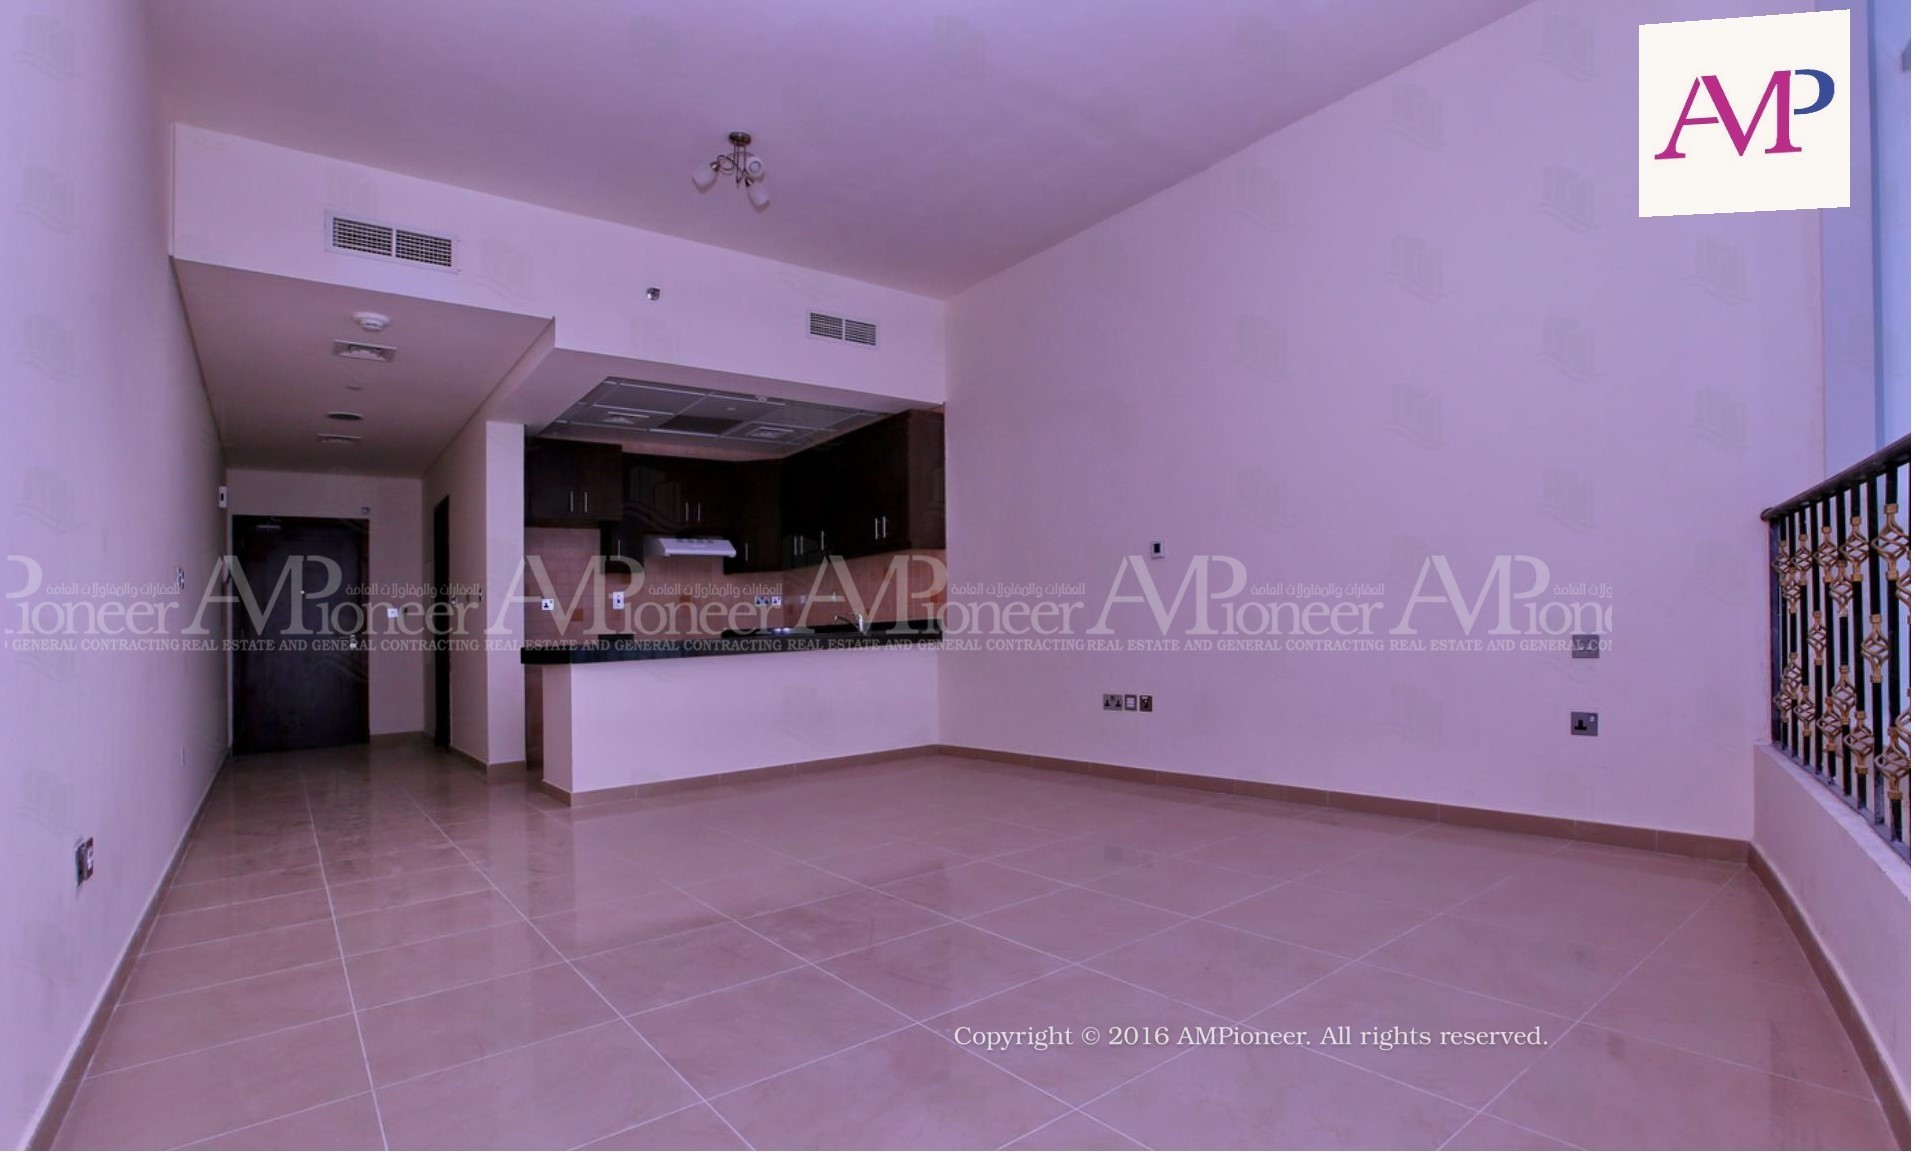 Best Offer! Studio in Hydra Avenue Tower